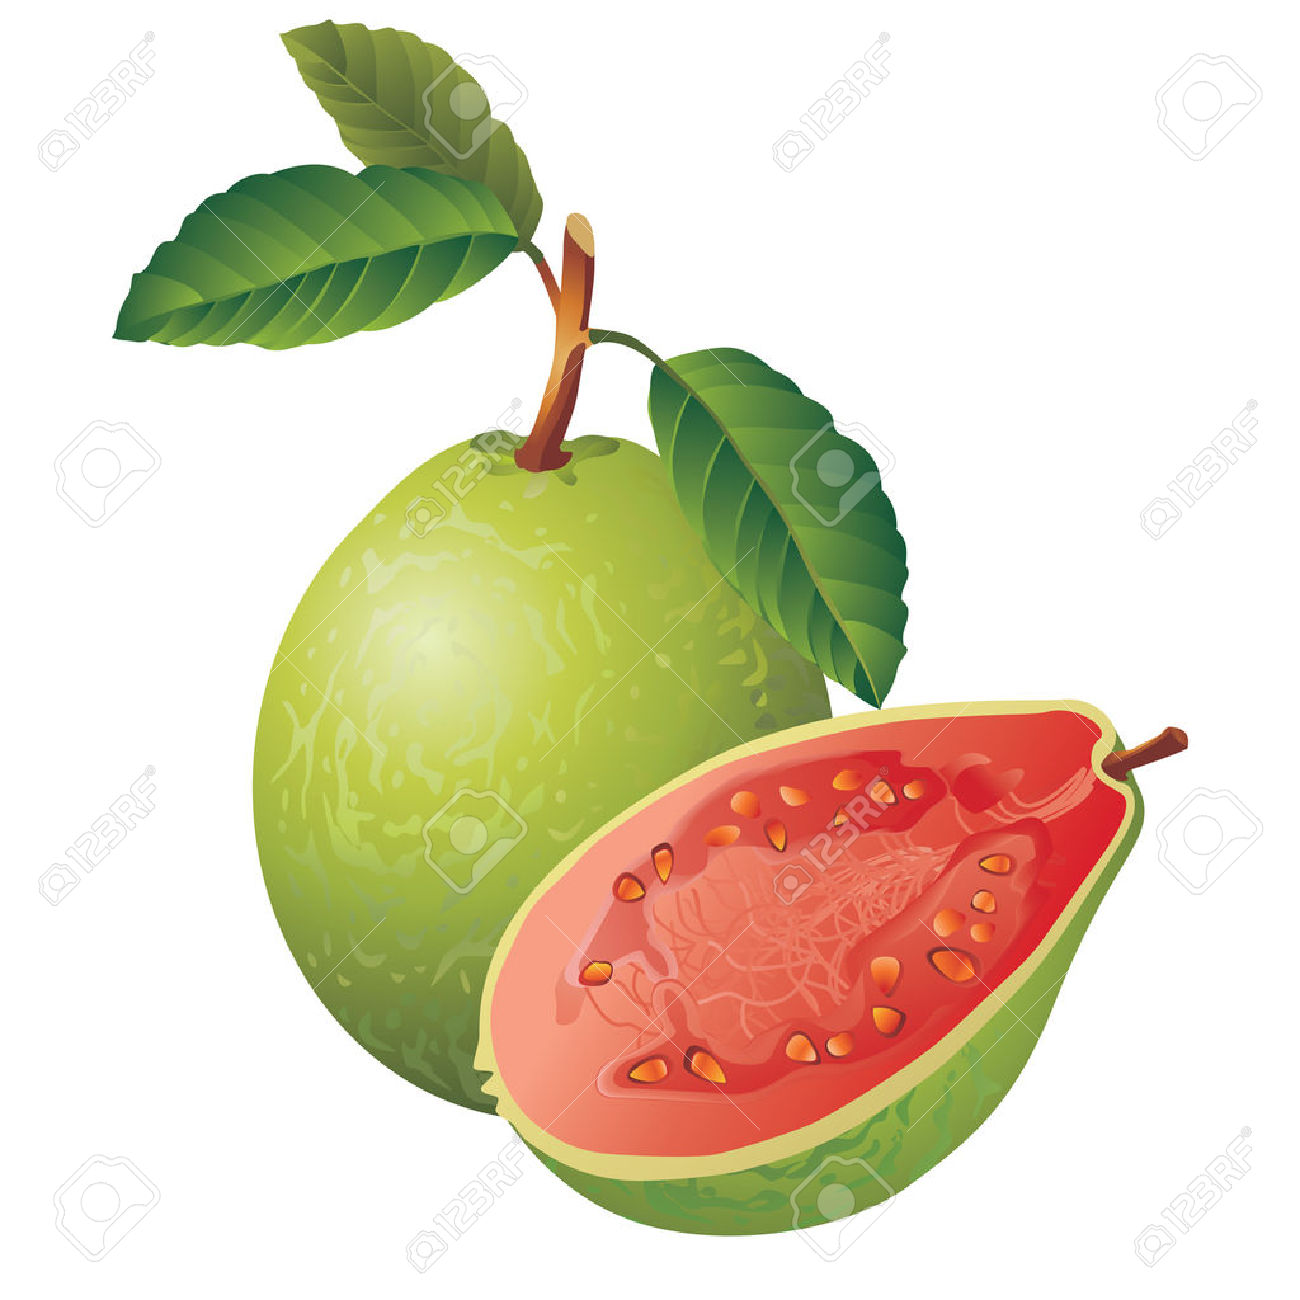 Vector Image Of A Guava Royalty Free Cliparts, Vectors, And Stock.